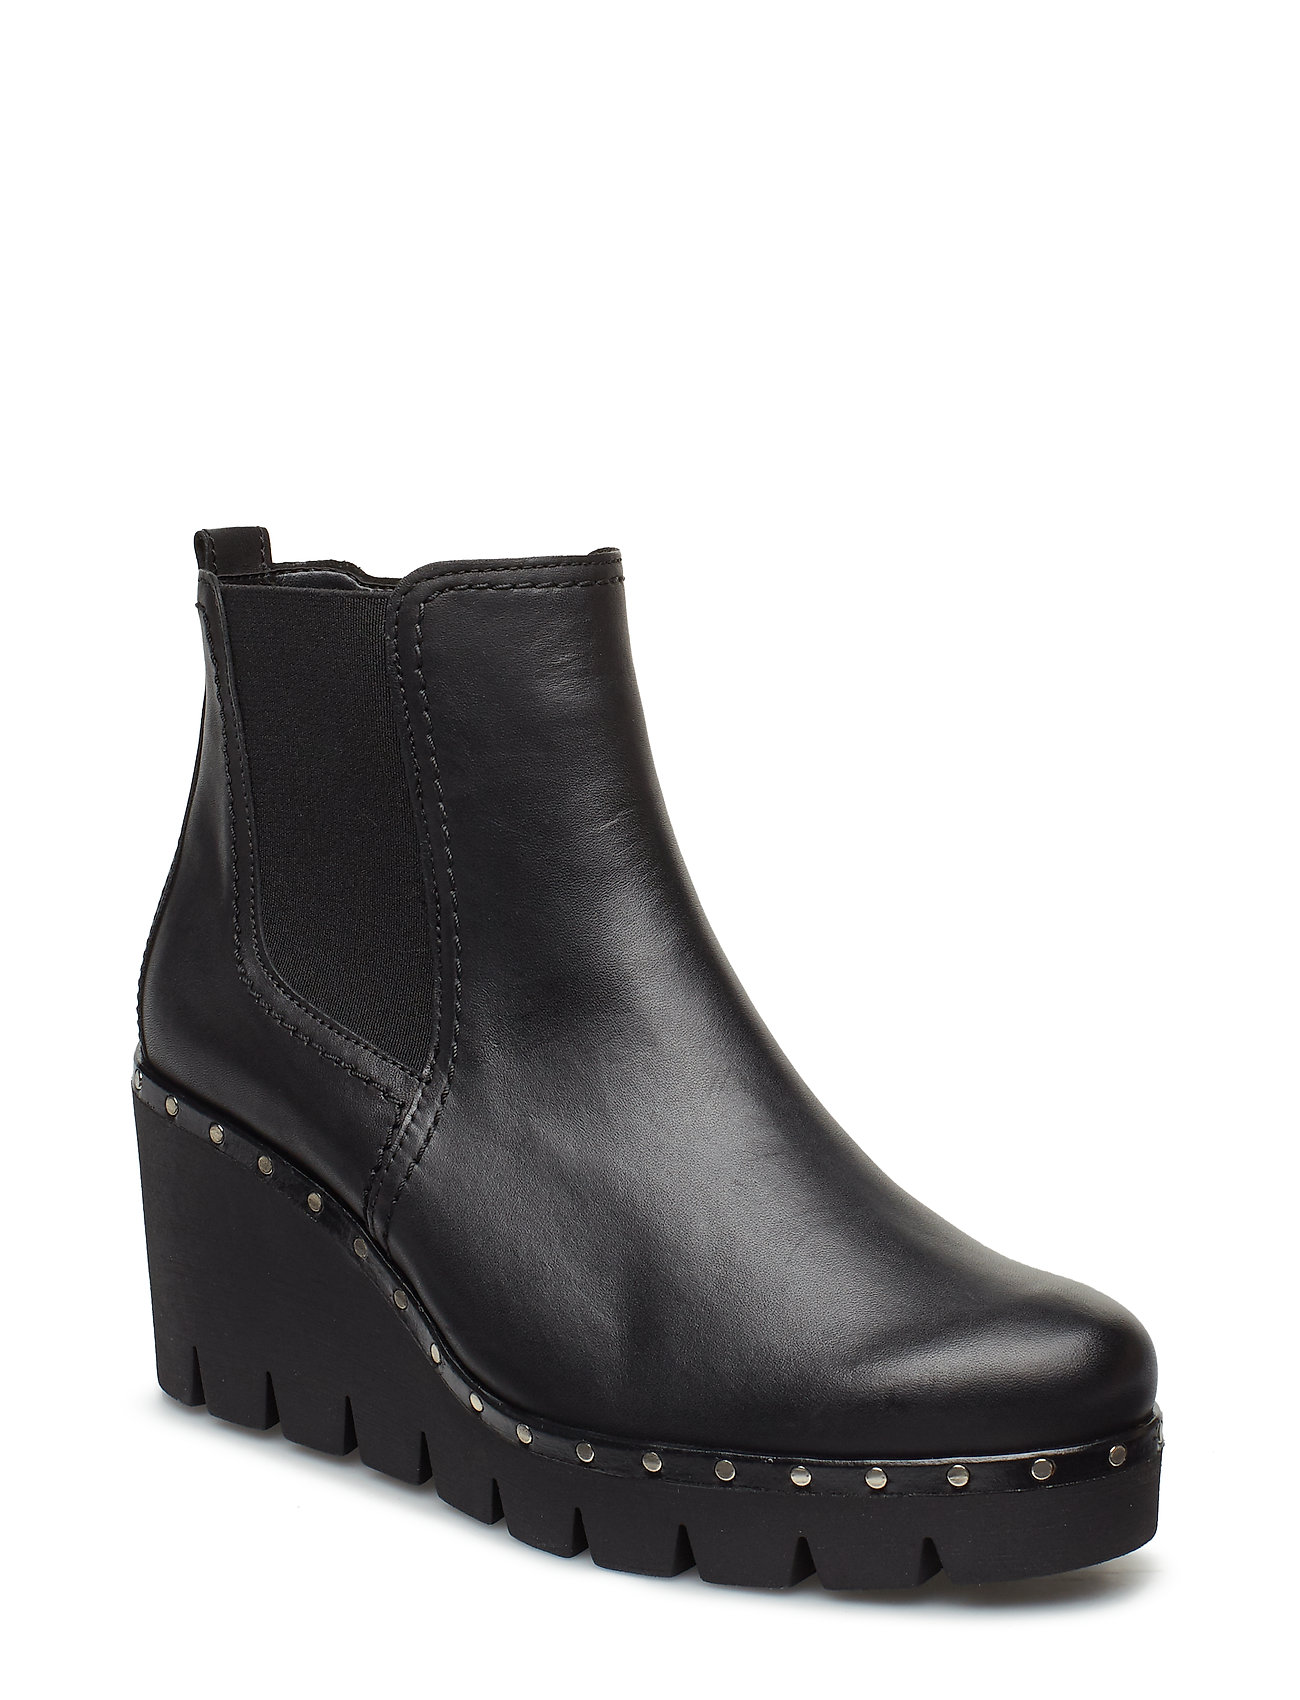 Image of Ankle Boots Shoes Boots Ankle Boots Ankle Boots With Heel Sort Gabor (3210823163)